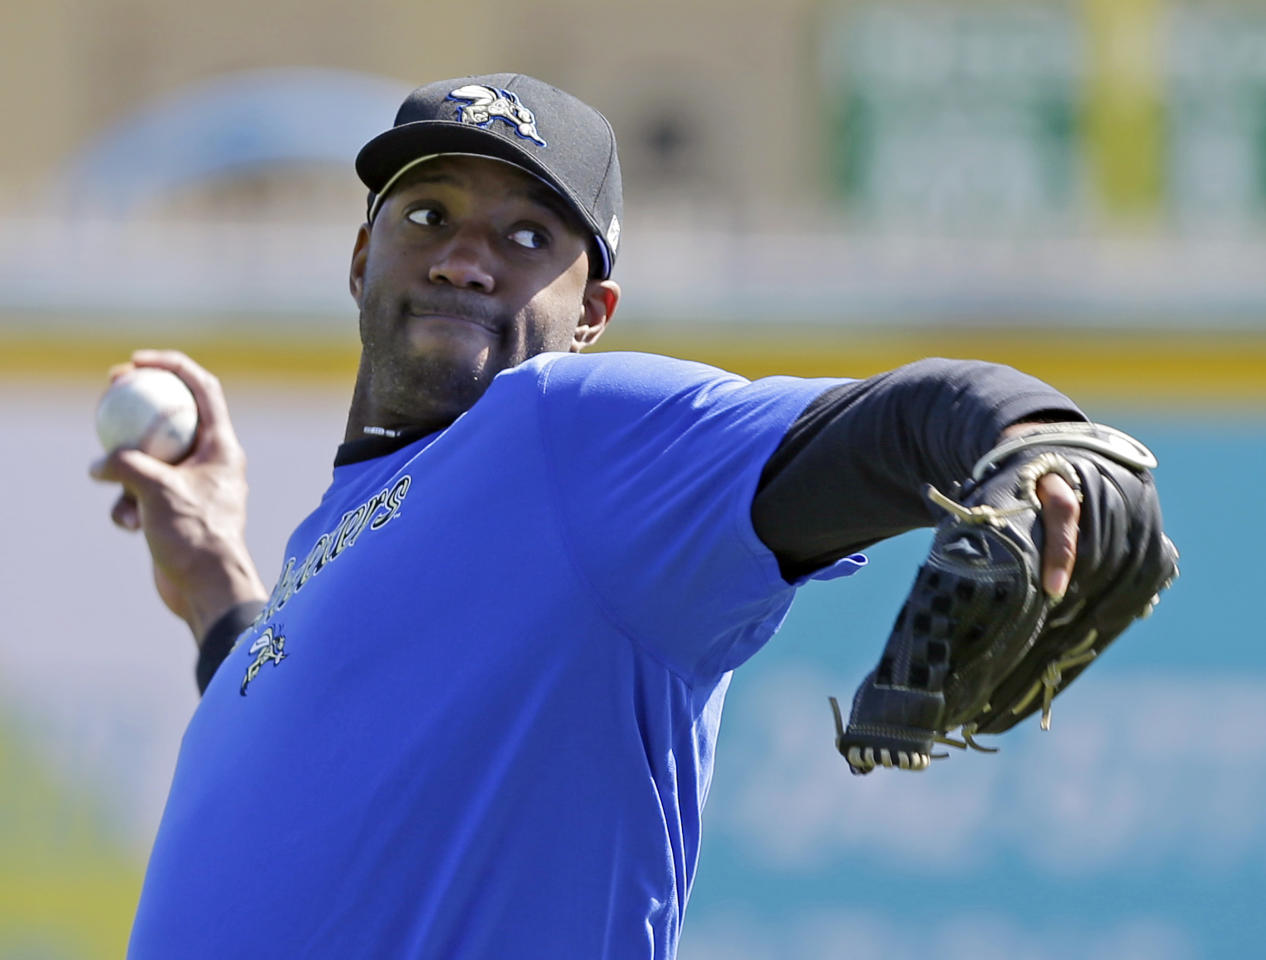 Retired NBA All-Star Tracy McGrady throws a pitch at the Sugar Land Skeeters baseball stadium Wednesday, Feb. 12, 2014, in Sugar Land, Texas. McGrady hopes to tryout as a pitcher for the independent Atlantic League Skeeters. (AP Photo/Pat Sullivan)